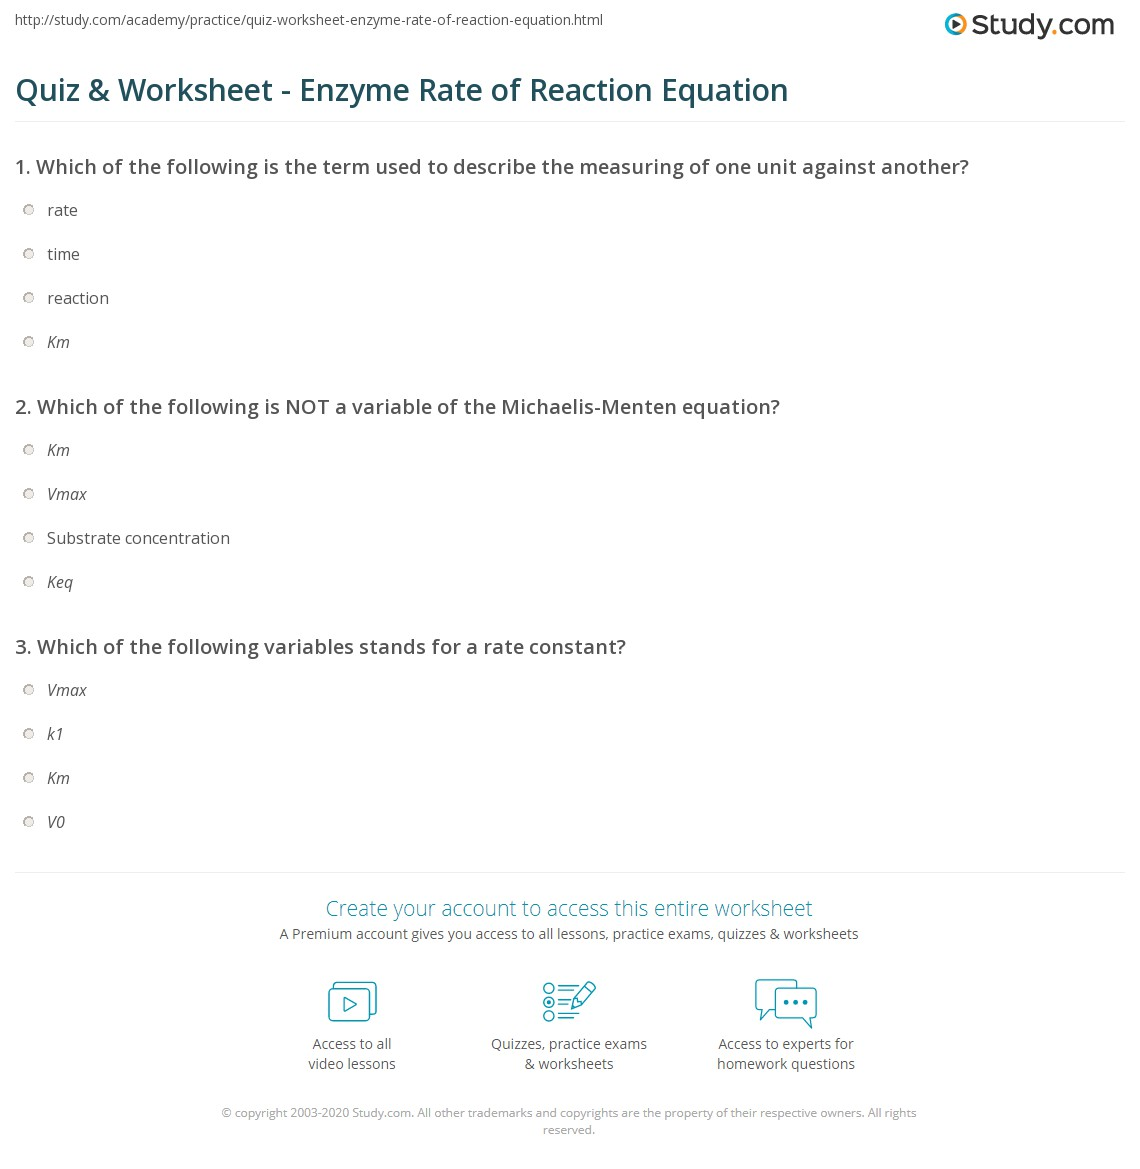 What is the unit for measuring rates of reactions?